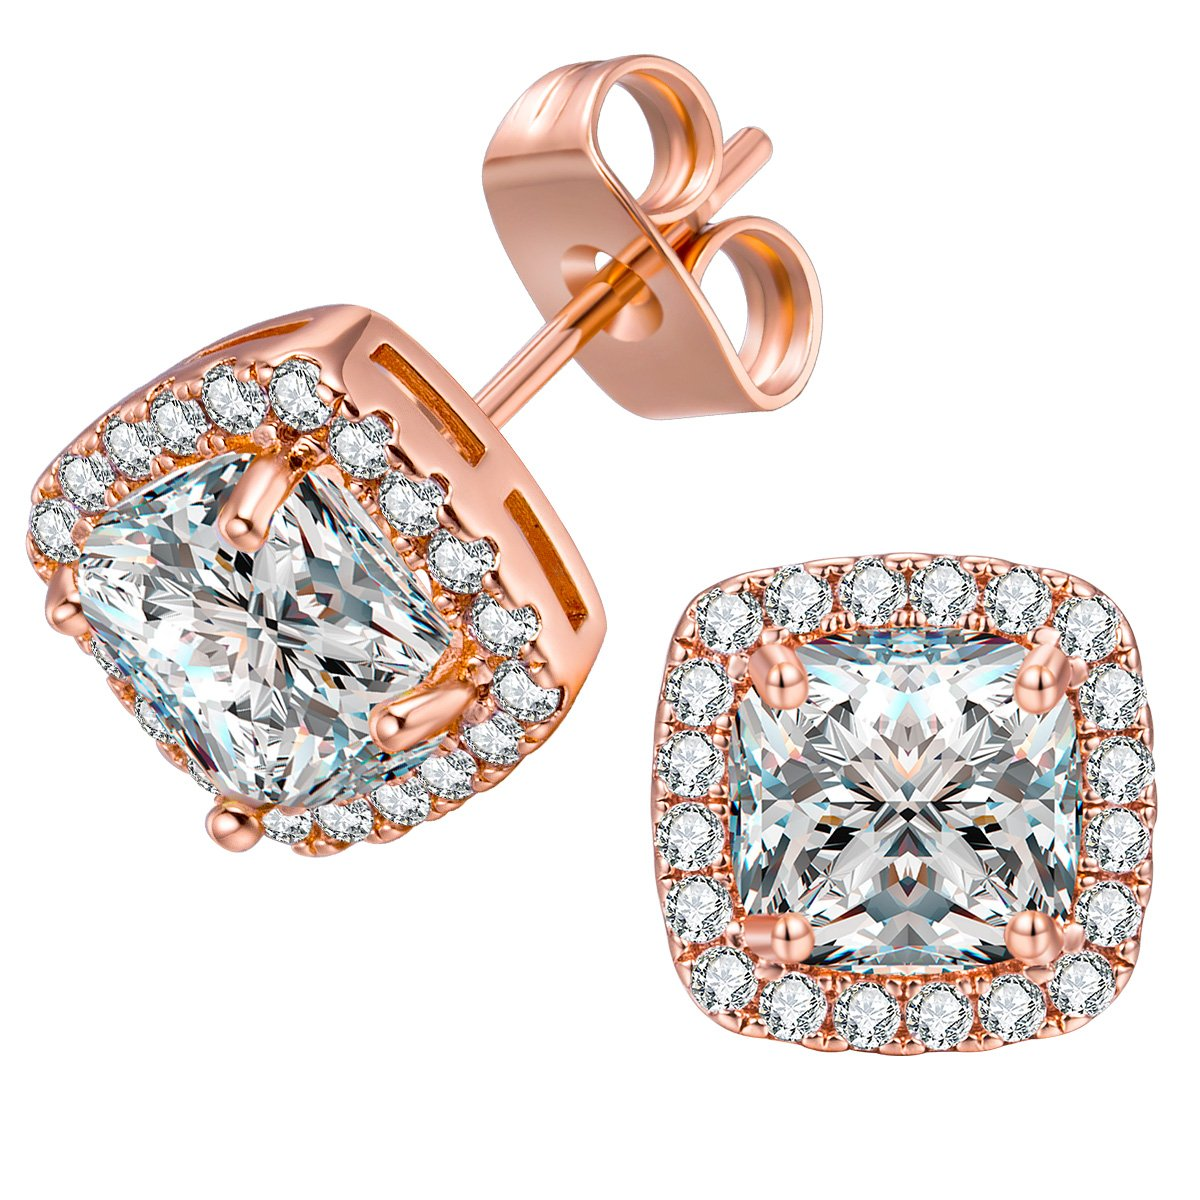 9b3a50705 Amazon.com: VOLUKA 18K Rose Gold Plated Square Cubic Zirconia Stud Earrings  6mm for Women Teen Girls Jewelry: Jewelry